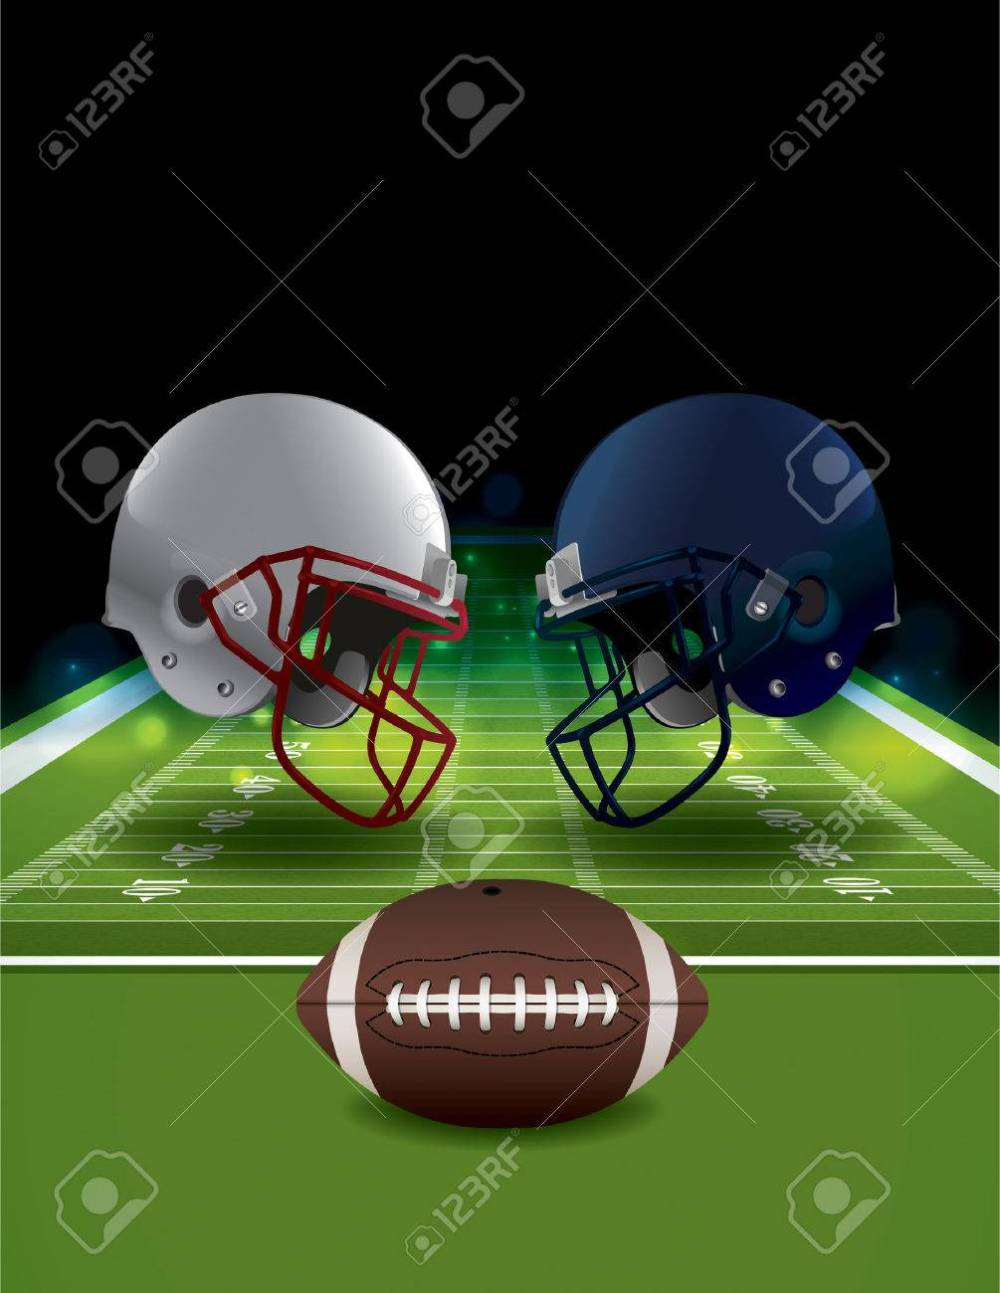 medium resolution of an illustration of american football helmets clashing on a field with a ball vector eps